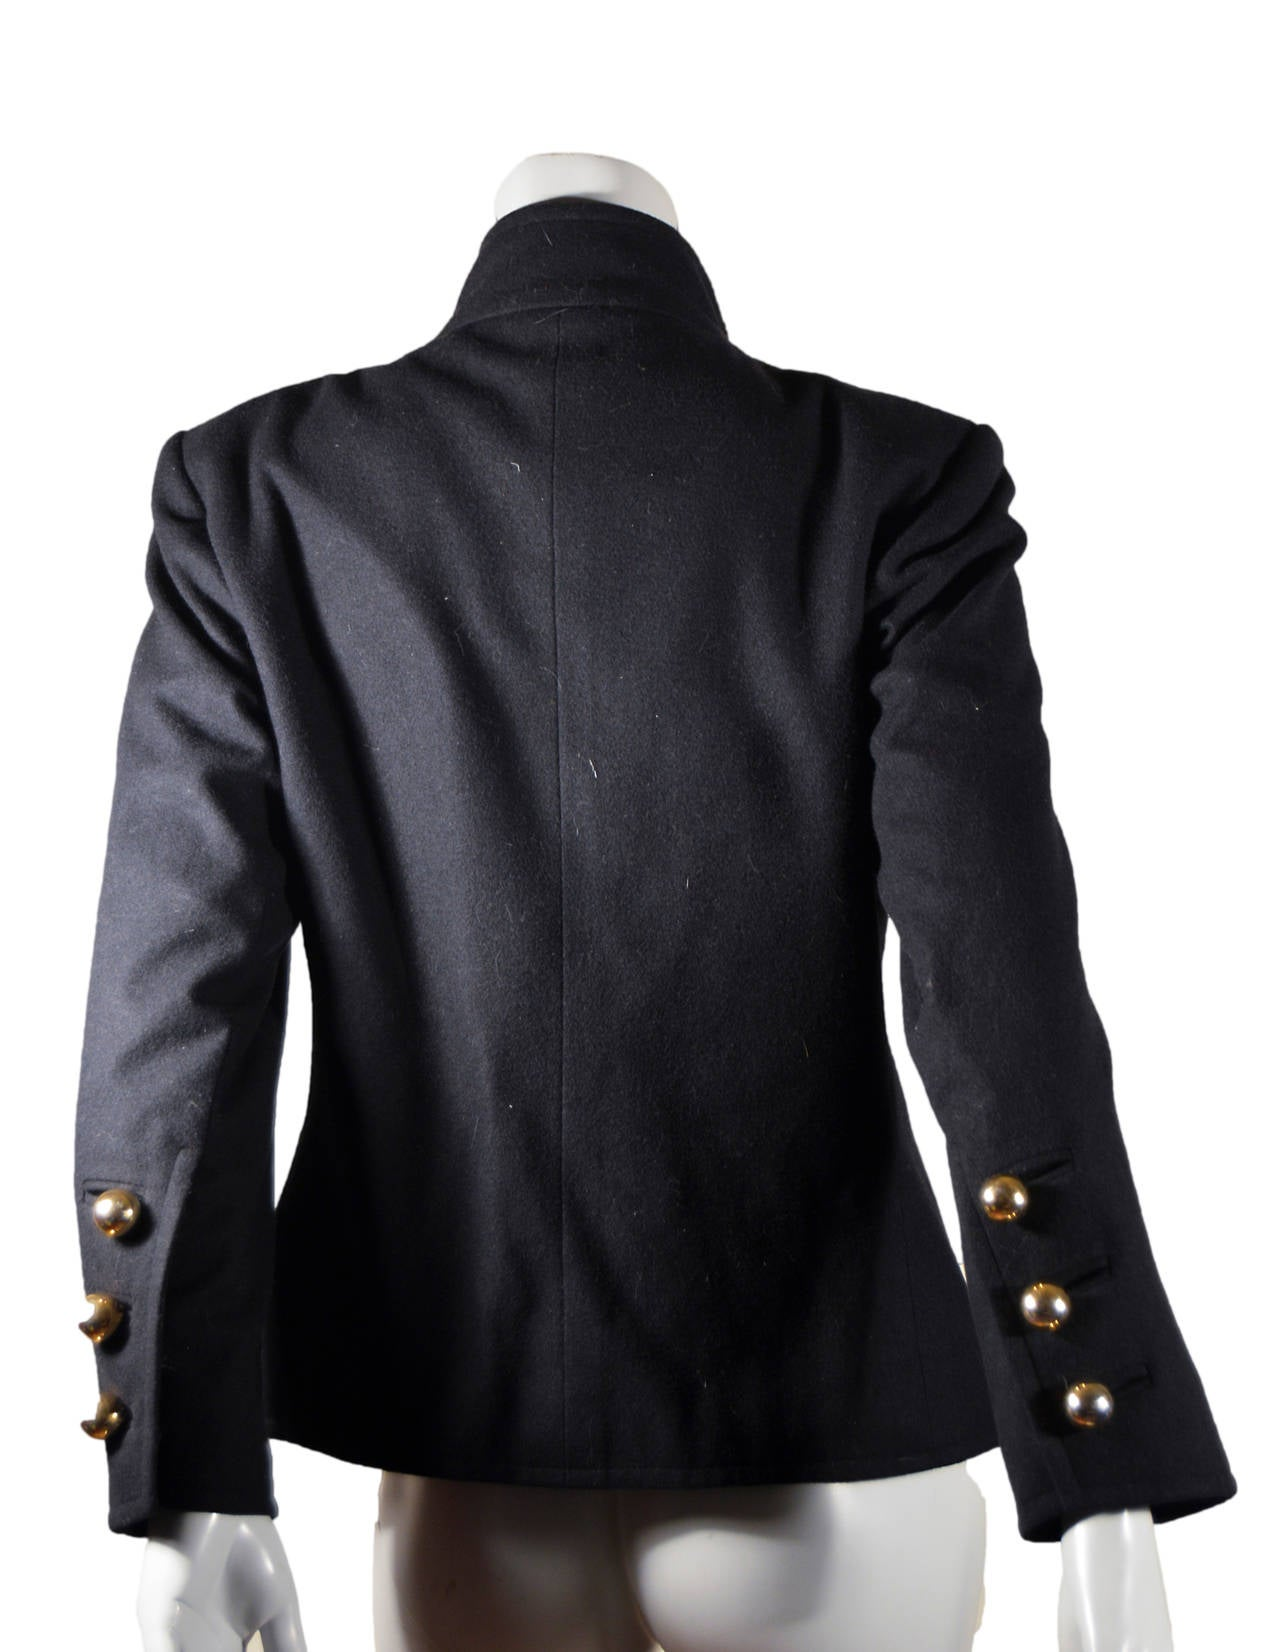 Yves Saint Laurent Rive Gauche Gold Button Coat In Excellent Condition For Sale In San Francisco, CA